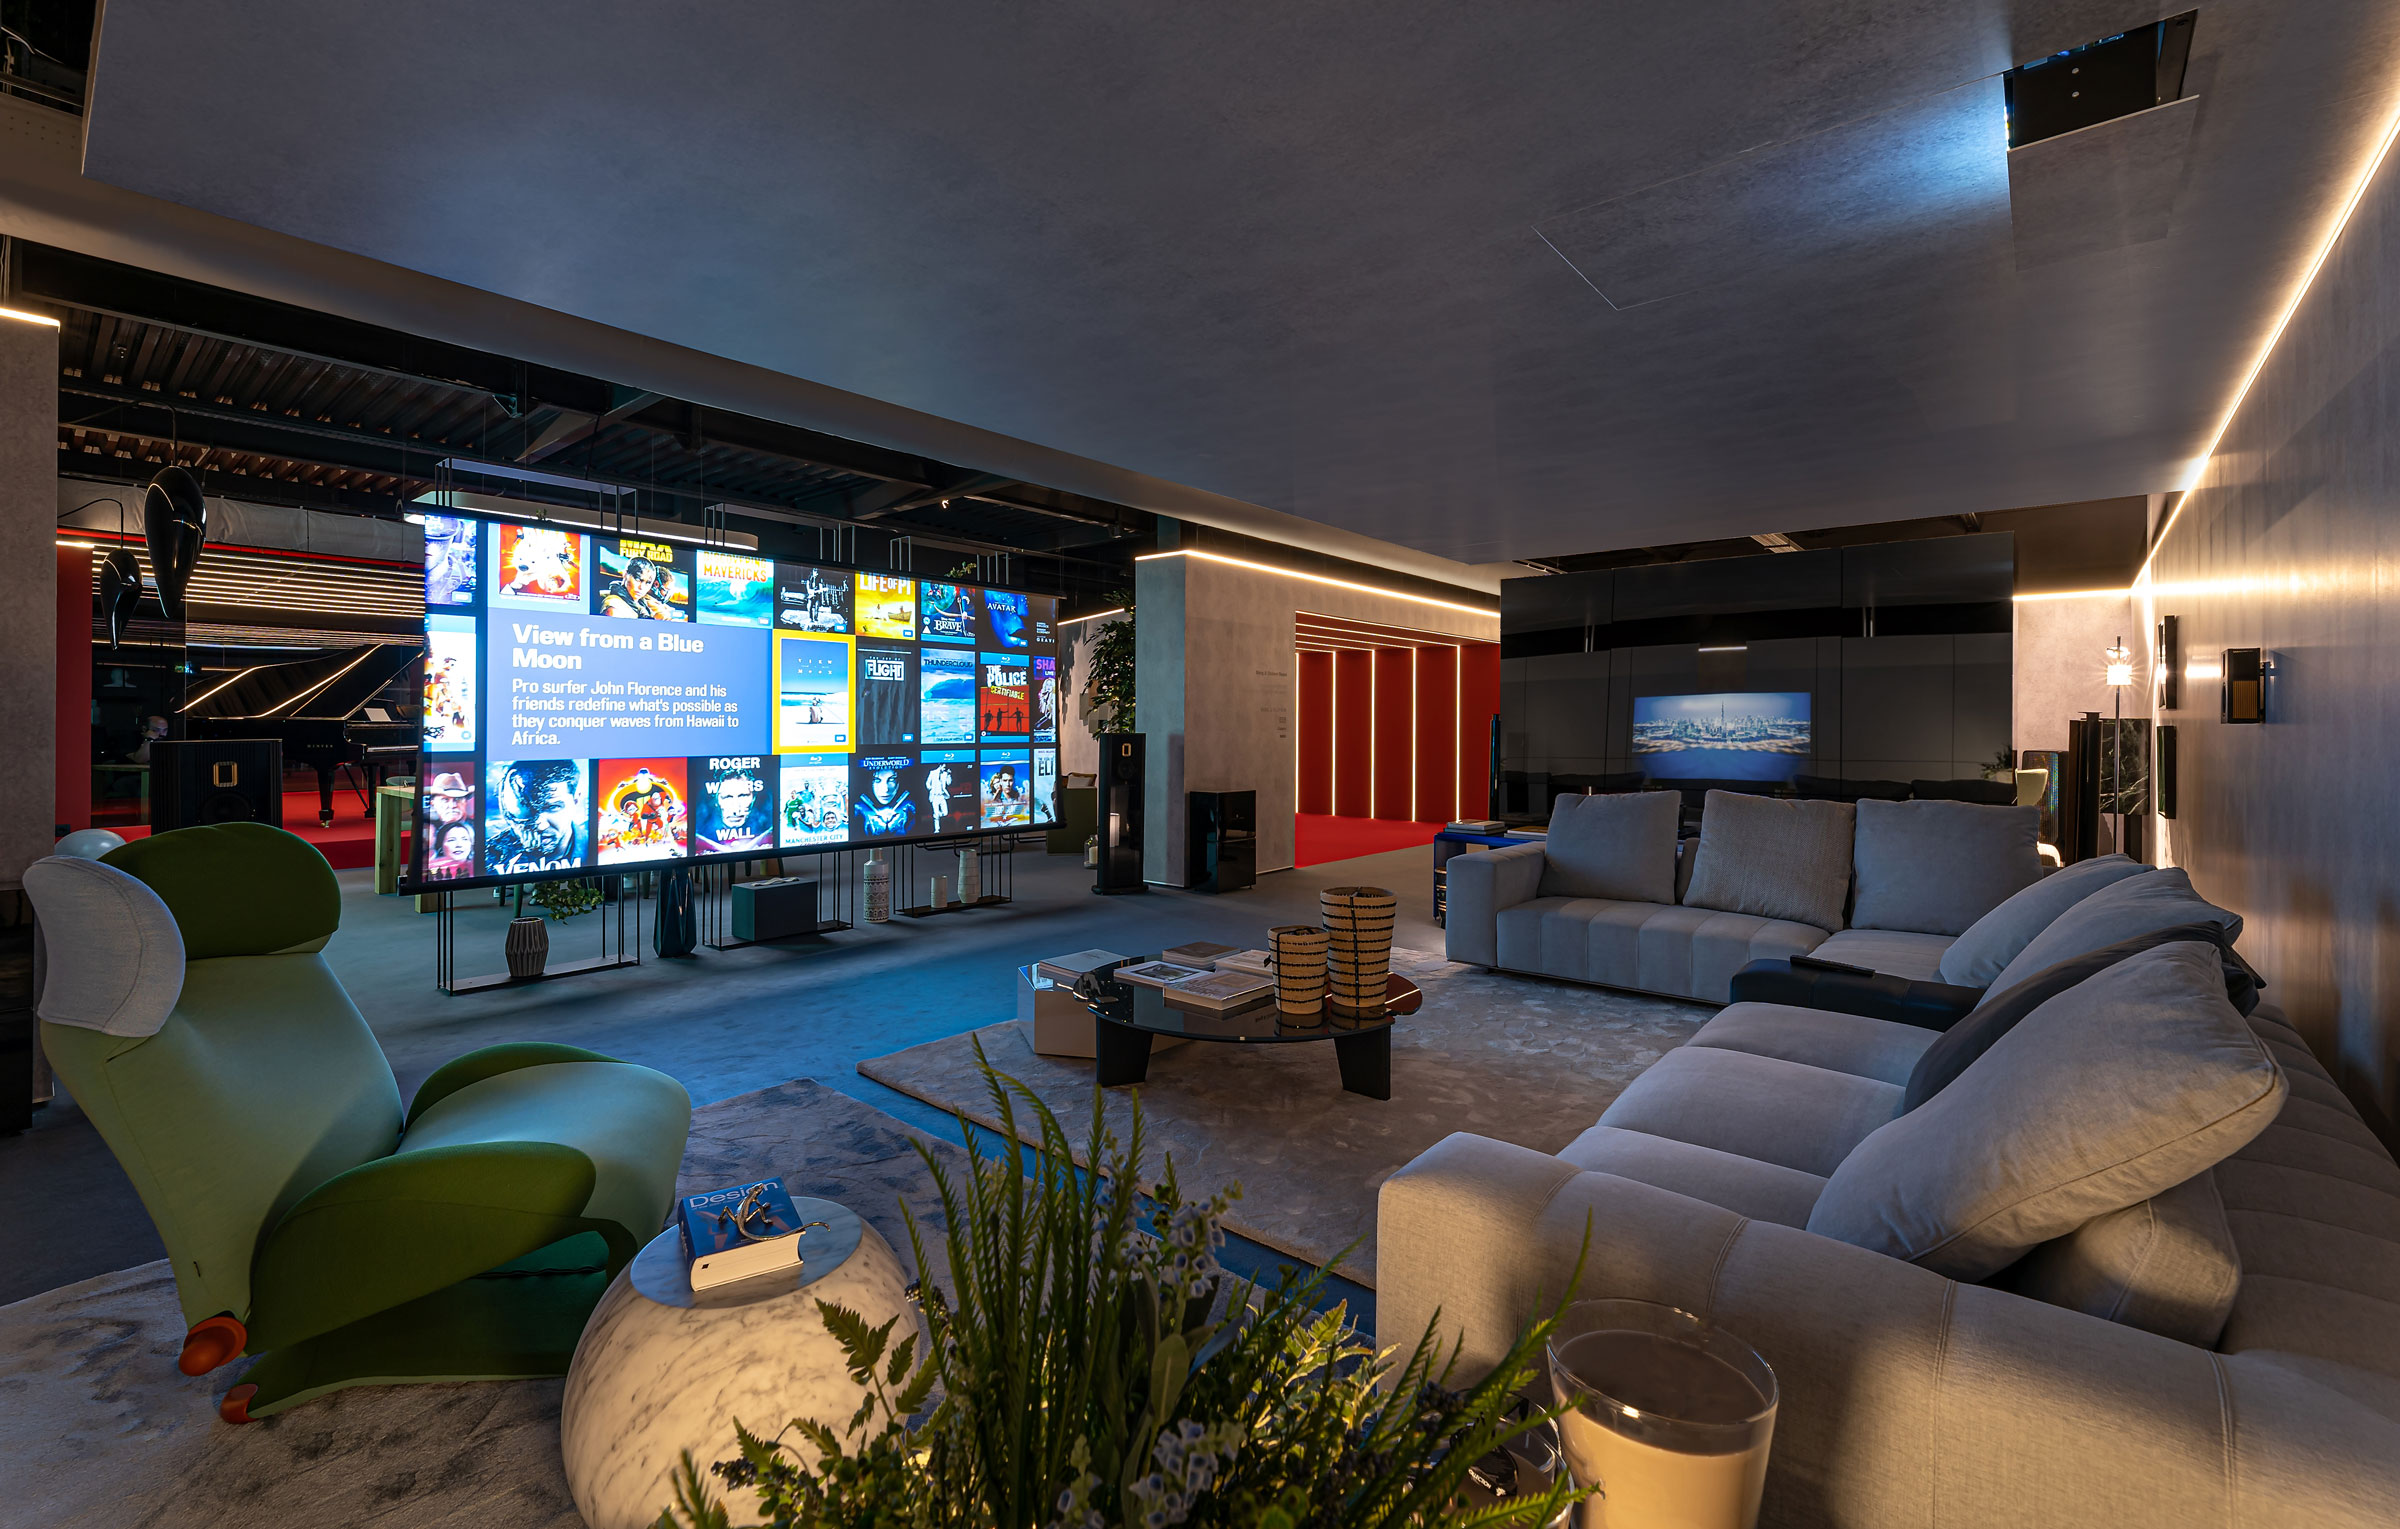 Levitating Showroom Demo Sets a New Media Room and Home Theater Standard